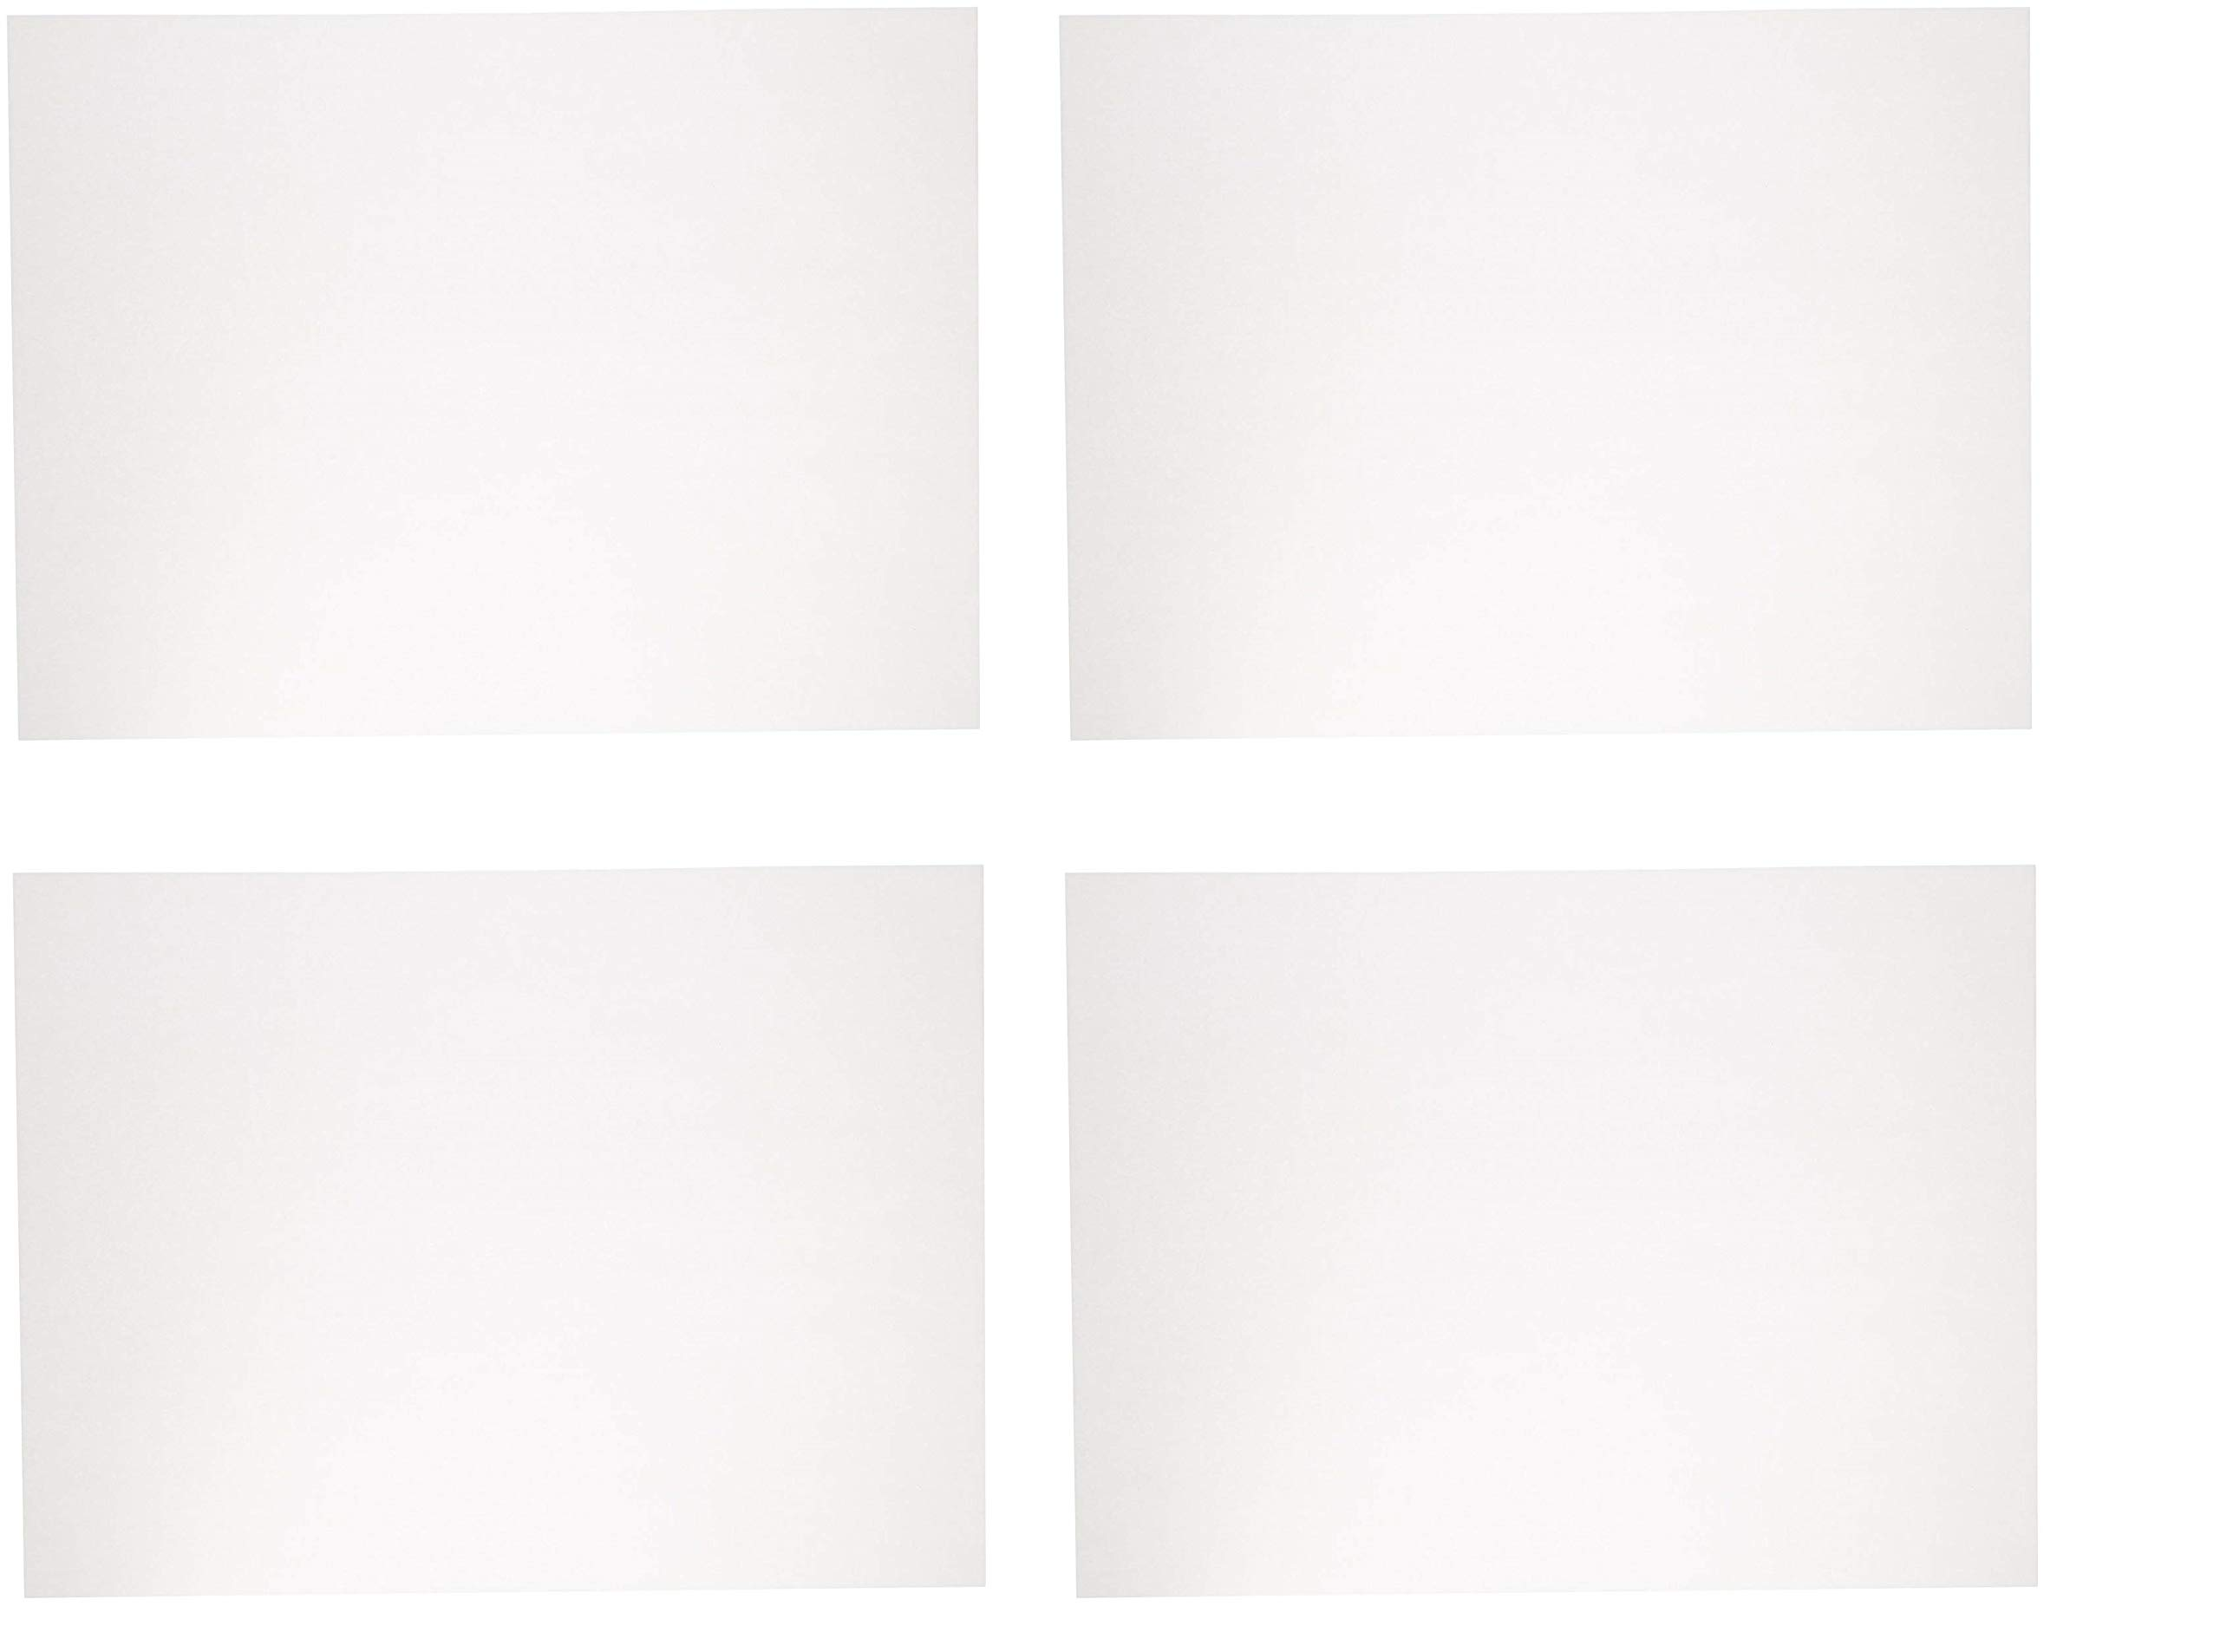 Sax Sulphite Drawing Paper, 60 lb, 18 x 24 Inches, Extra-White, Pack of 500 (4 X Pack of 500) by Sax